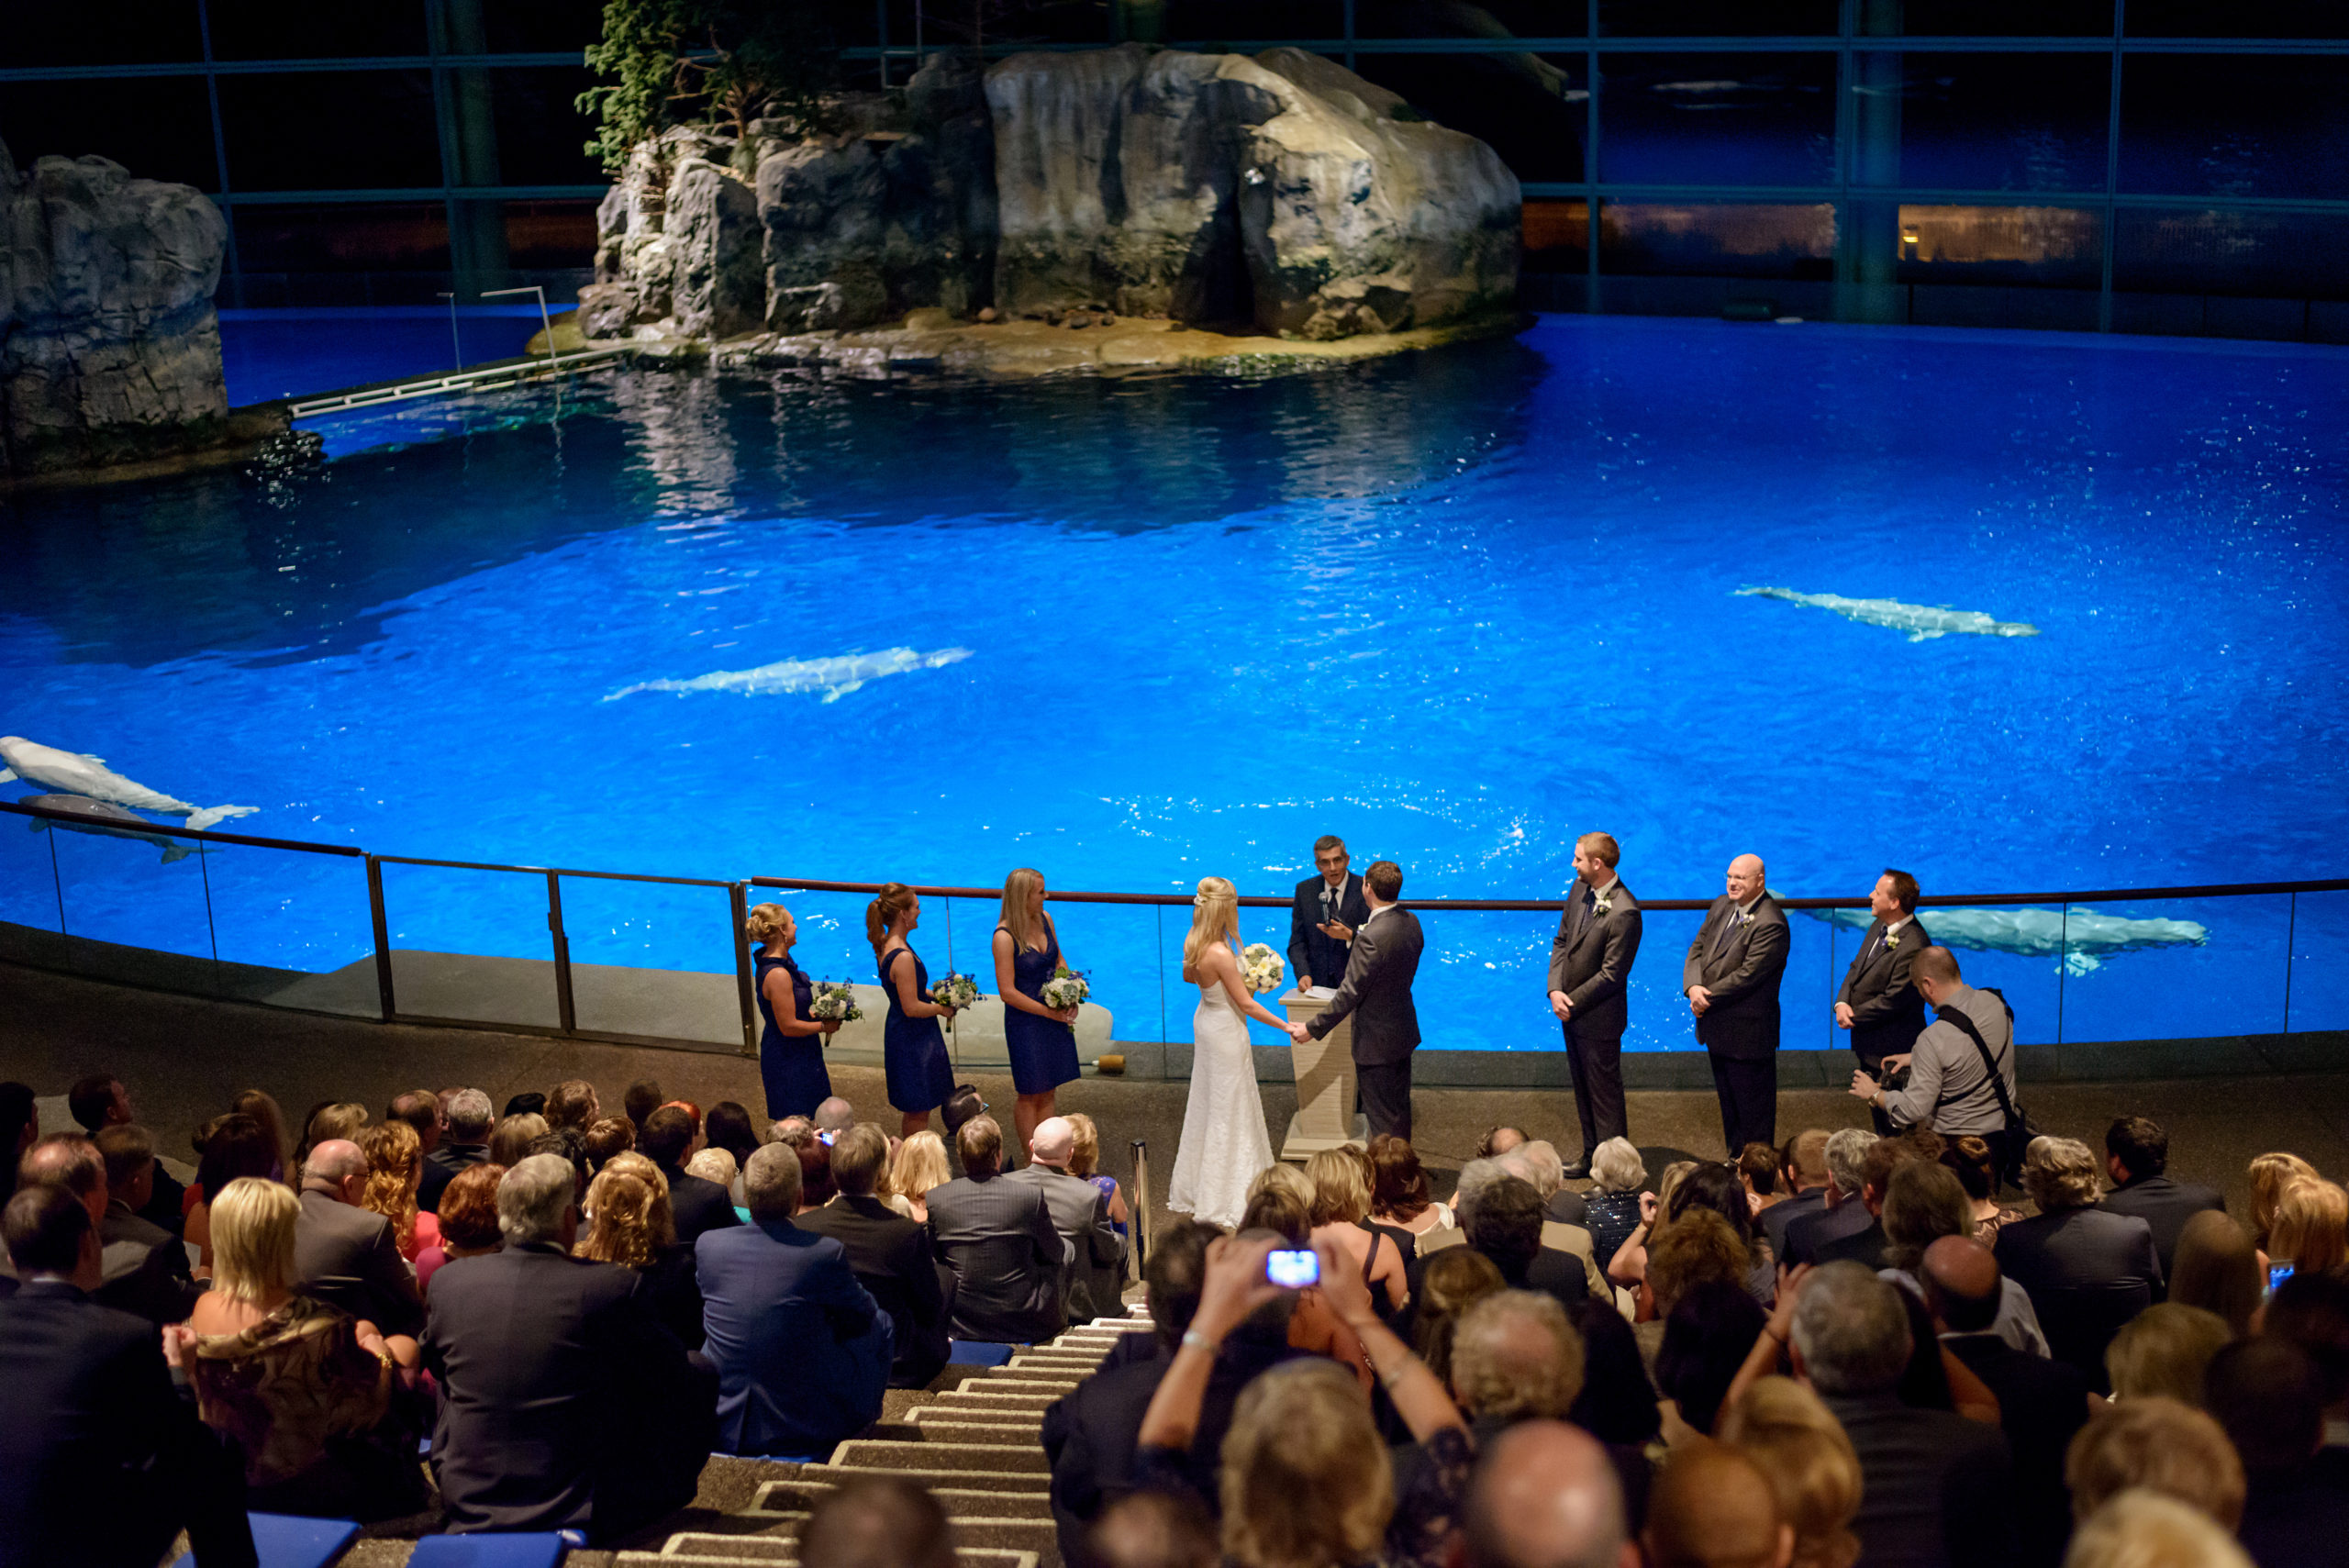 Wedding in front of aquarium tank